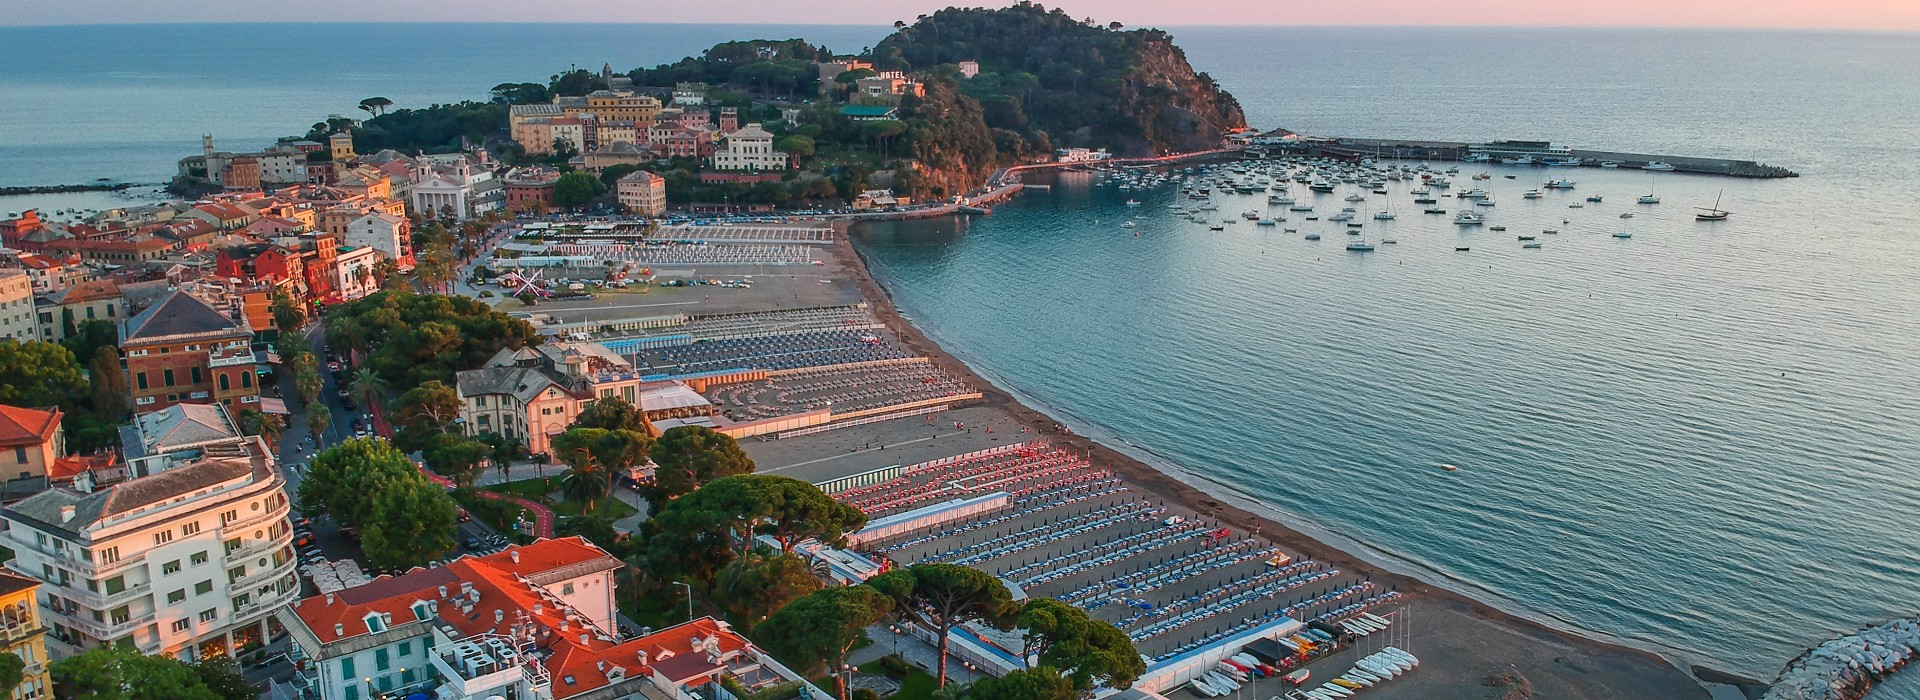 Sestri Levante Holiday and Vacation in one of the most beautiful little towns of Ligurian Riviera